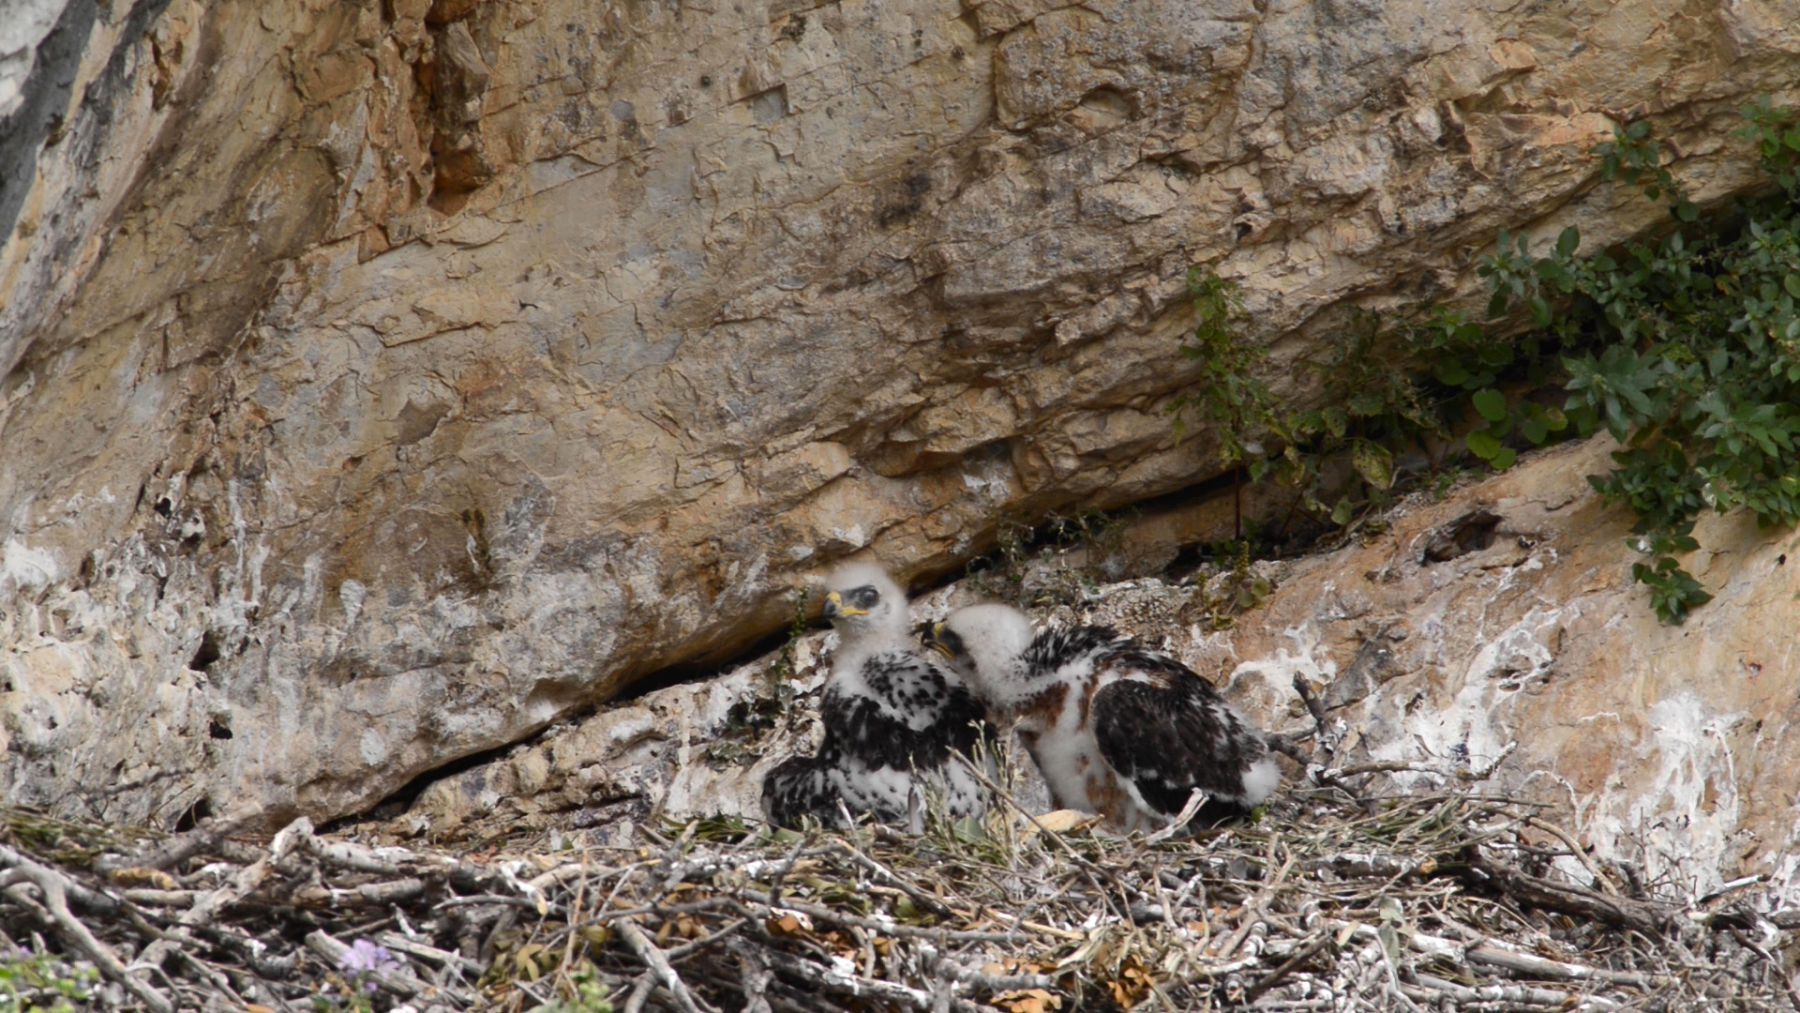 Two Bonelli's eagle (Aquila fasciata) chicks in the nest, pecking each other, Andalusia, Spain, June.